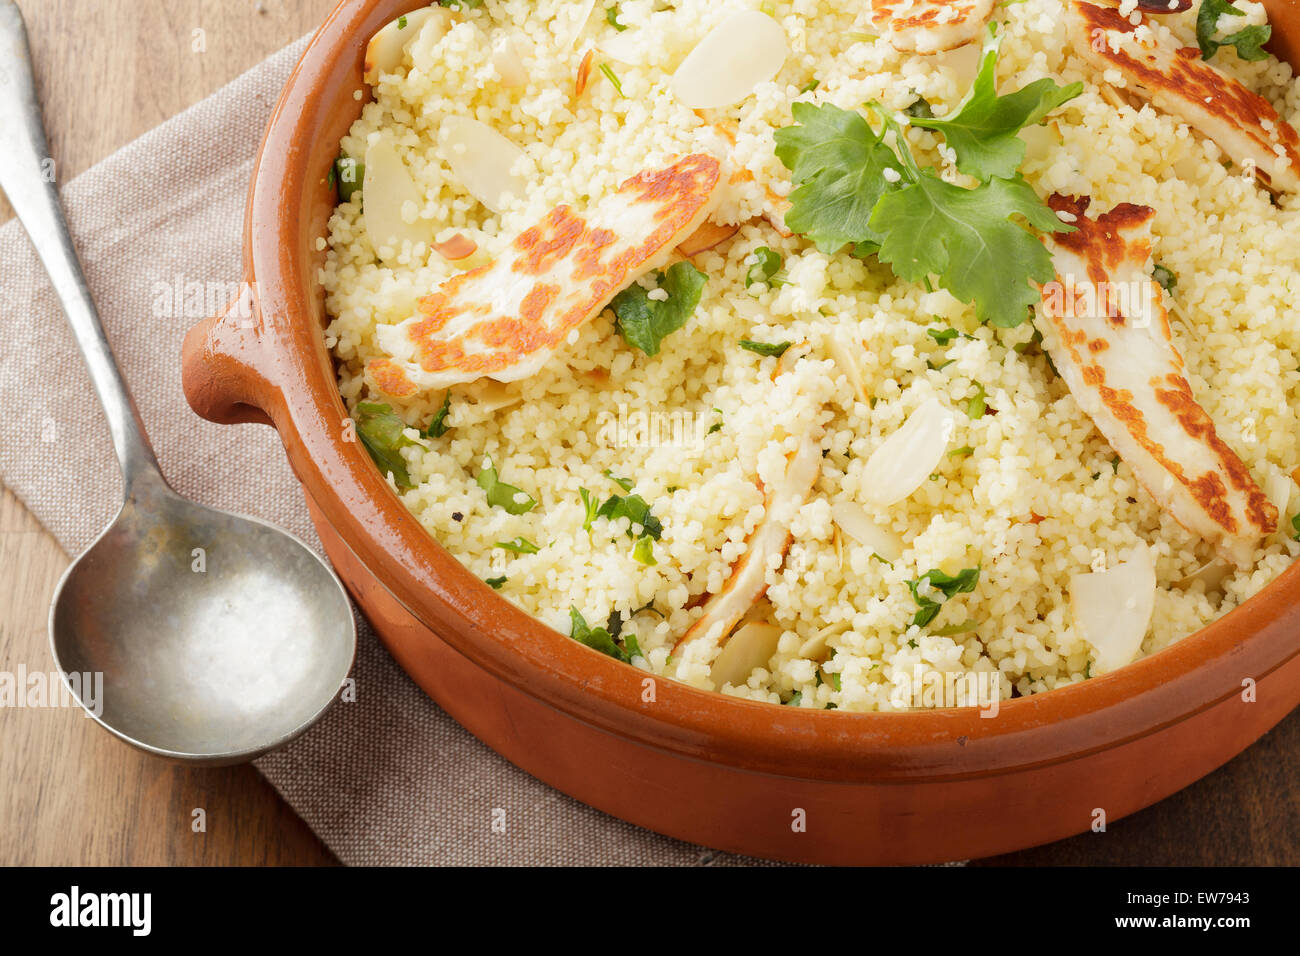 Lemon and parsley couscous with almonds and halloumi Stock Photo